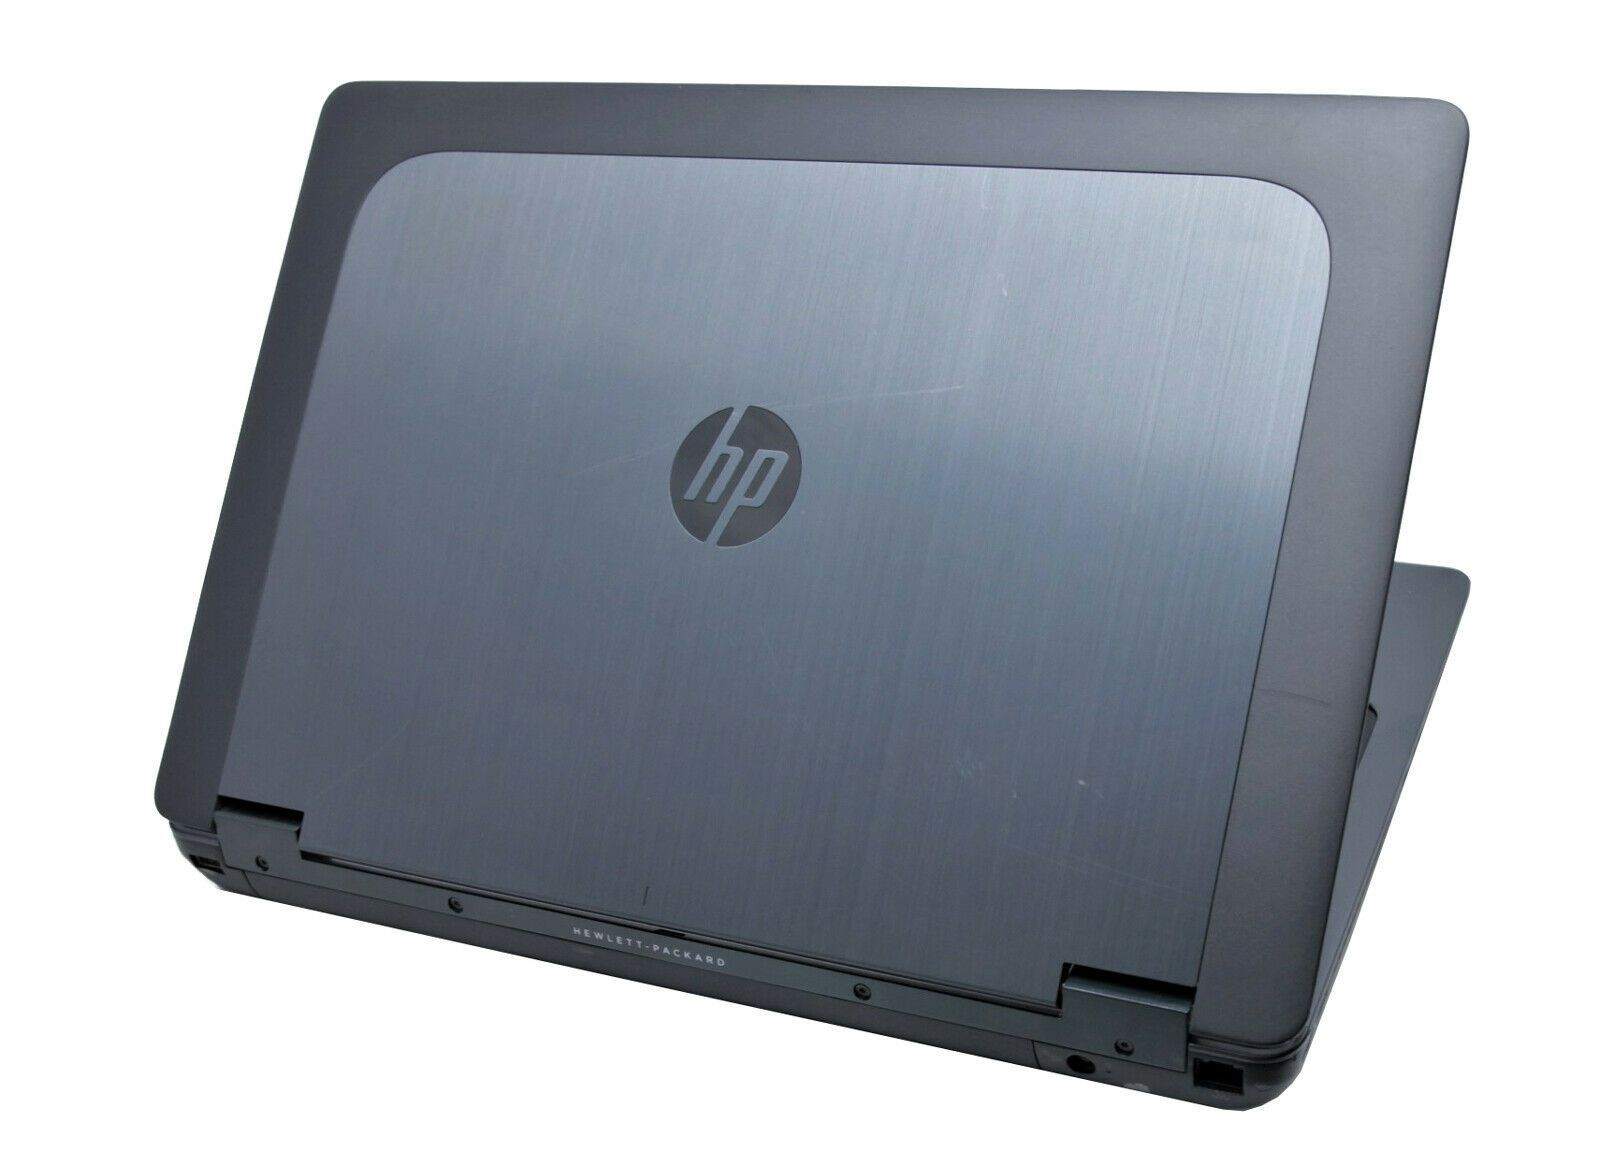 HP ZBook 15 G2 CAD Laptop: 32GB RAM, Core i7, 256GB SSD+500GB HDD, Warranty, VAT - CruiseTech